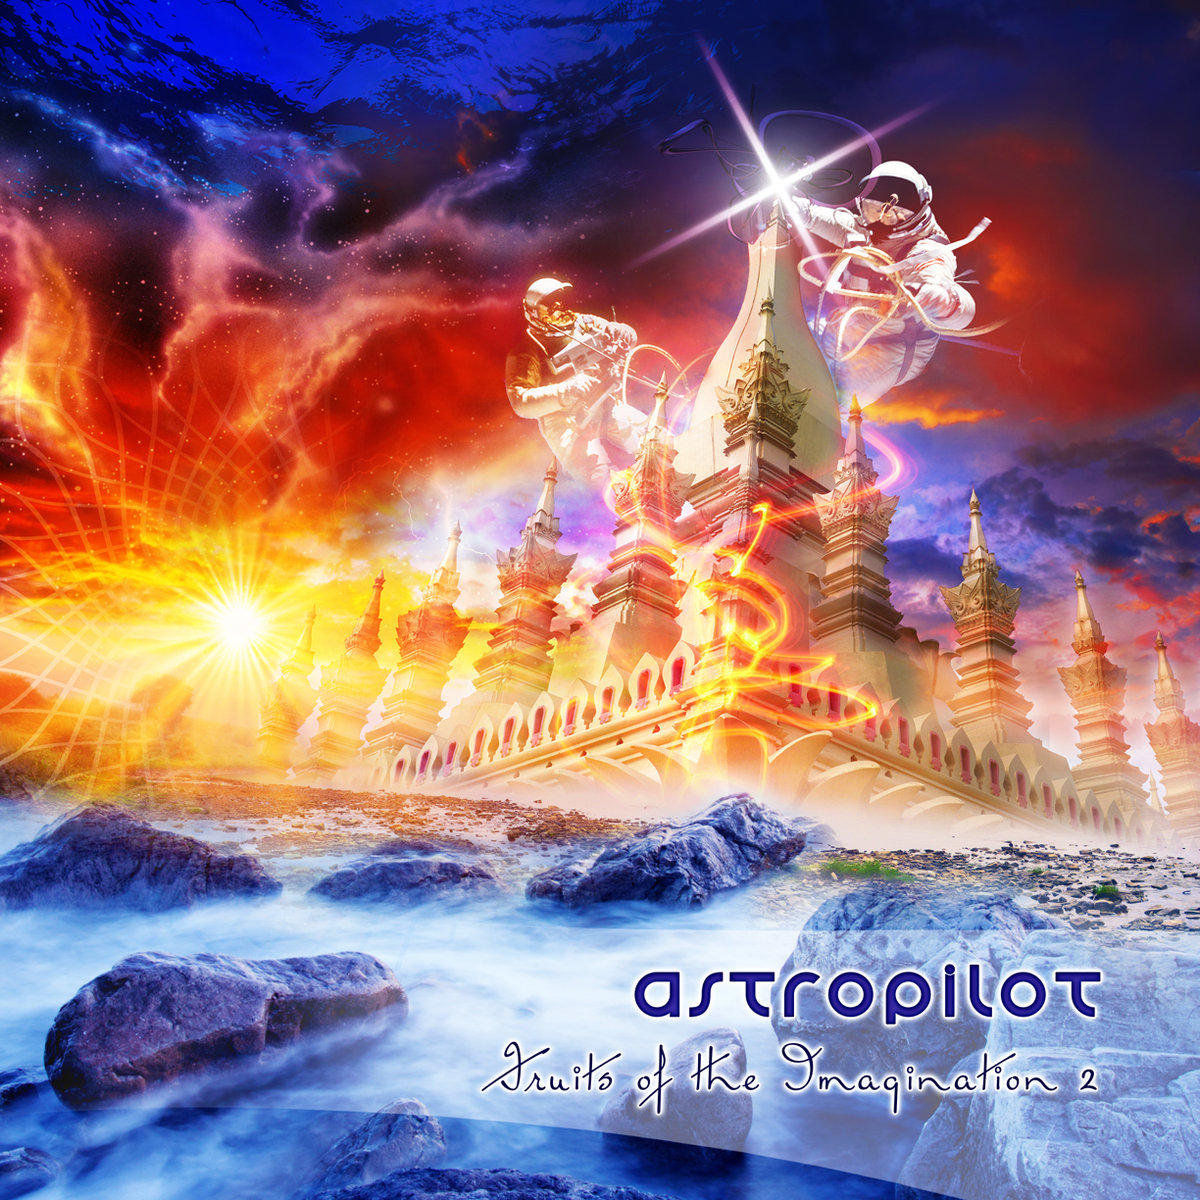 AstroPilot - Enigmatic Hieroglyph ² @ 'Fruits of the Imagination 2' album (astropilot, electronic)